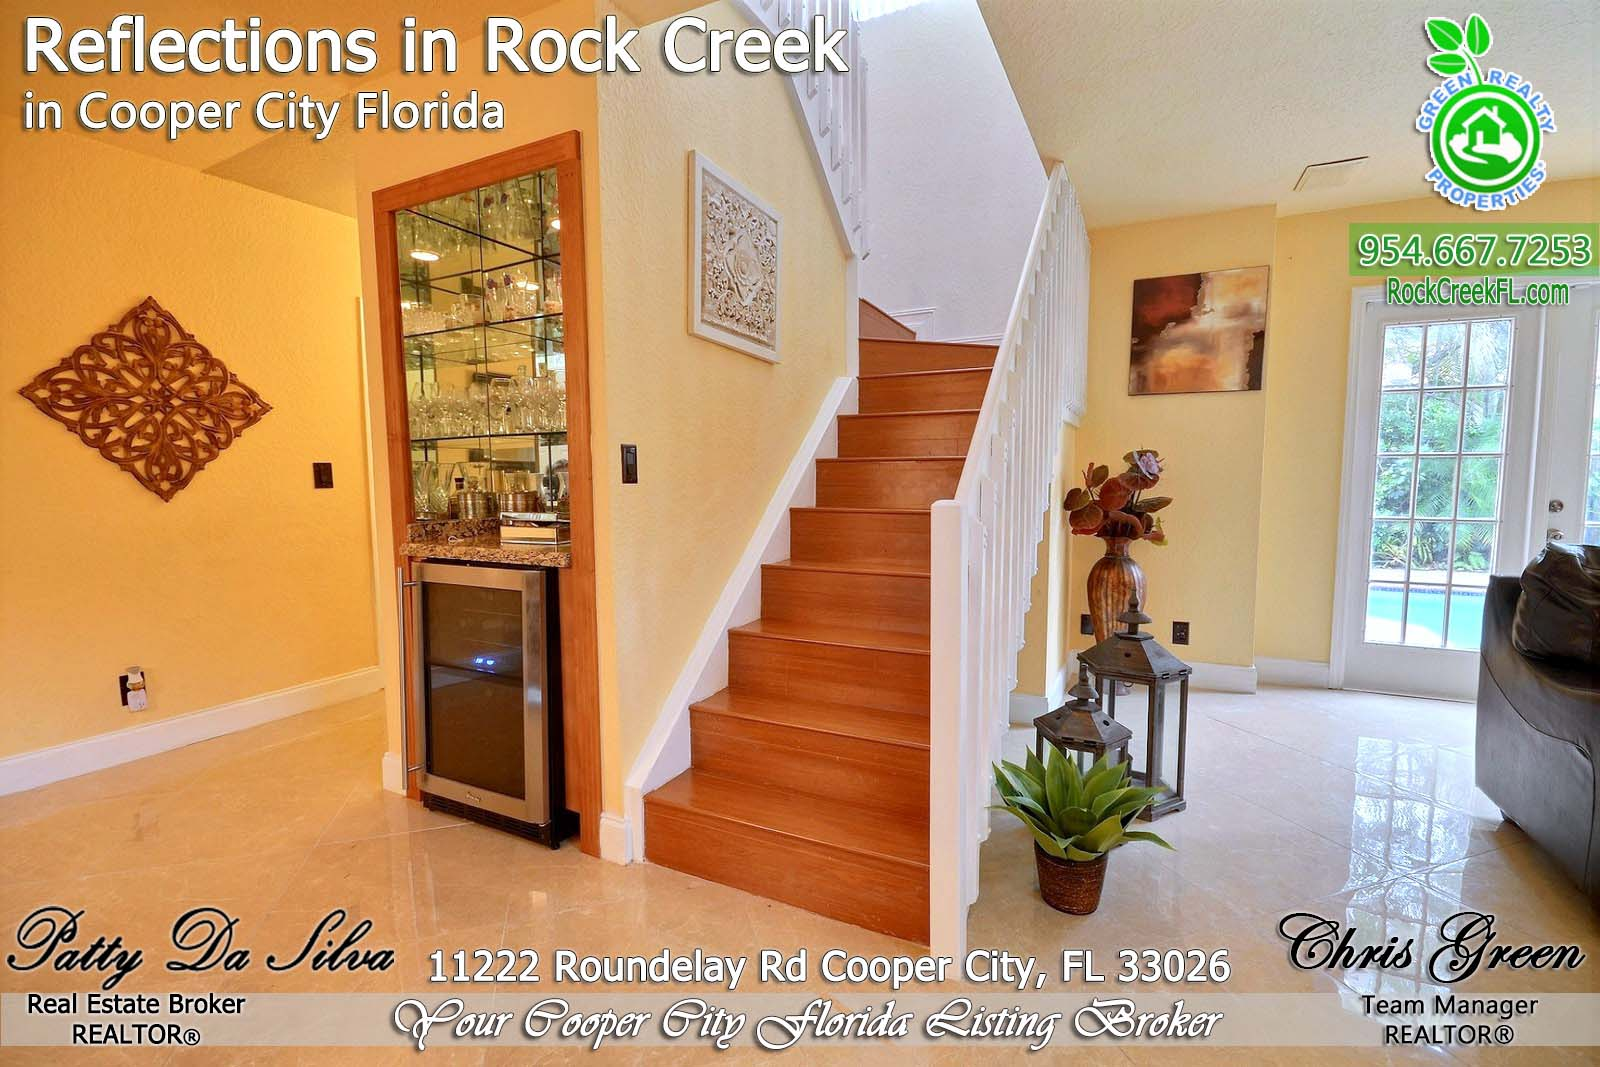 Reflections in Rock Creek homes